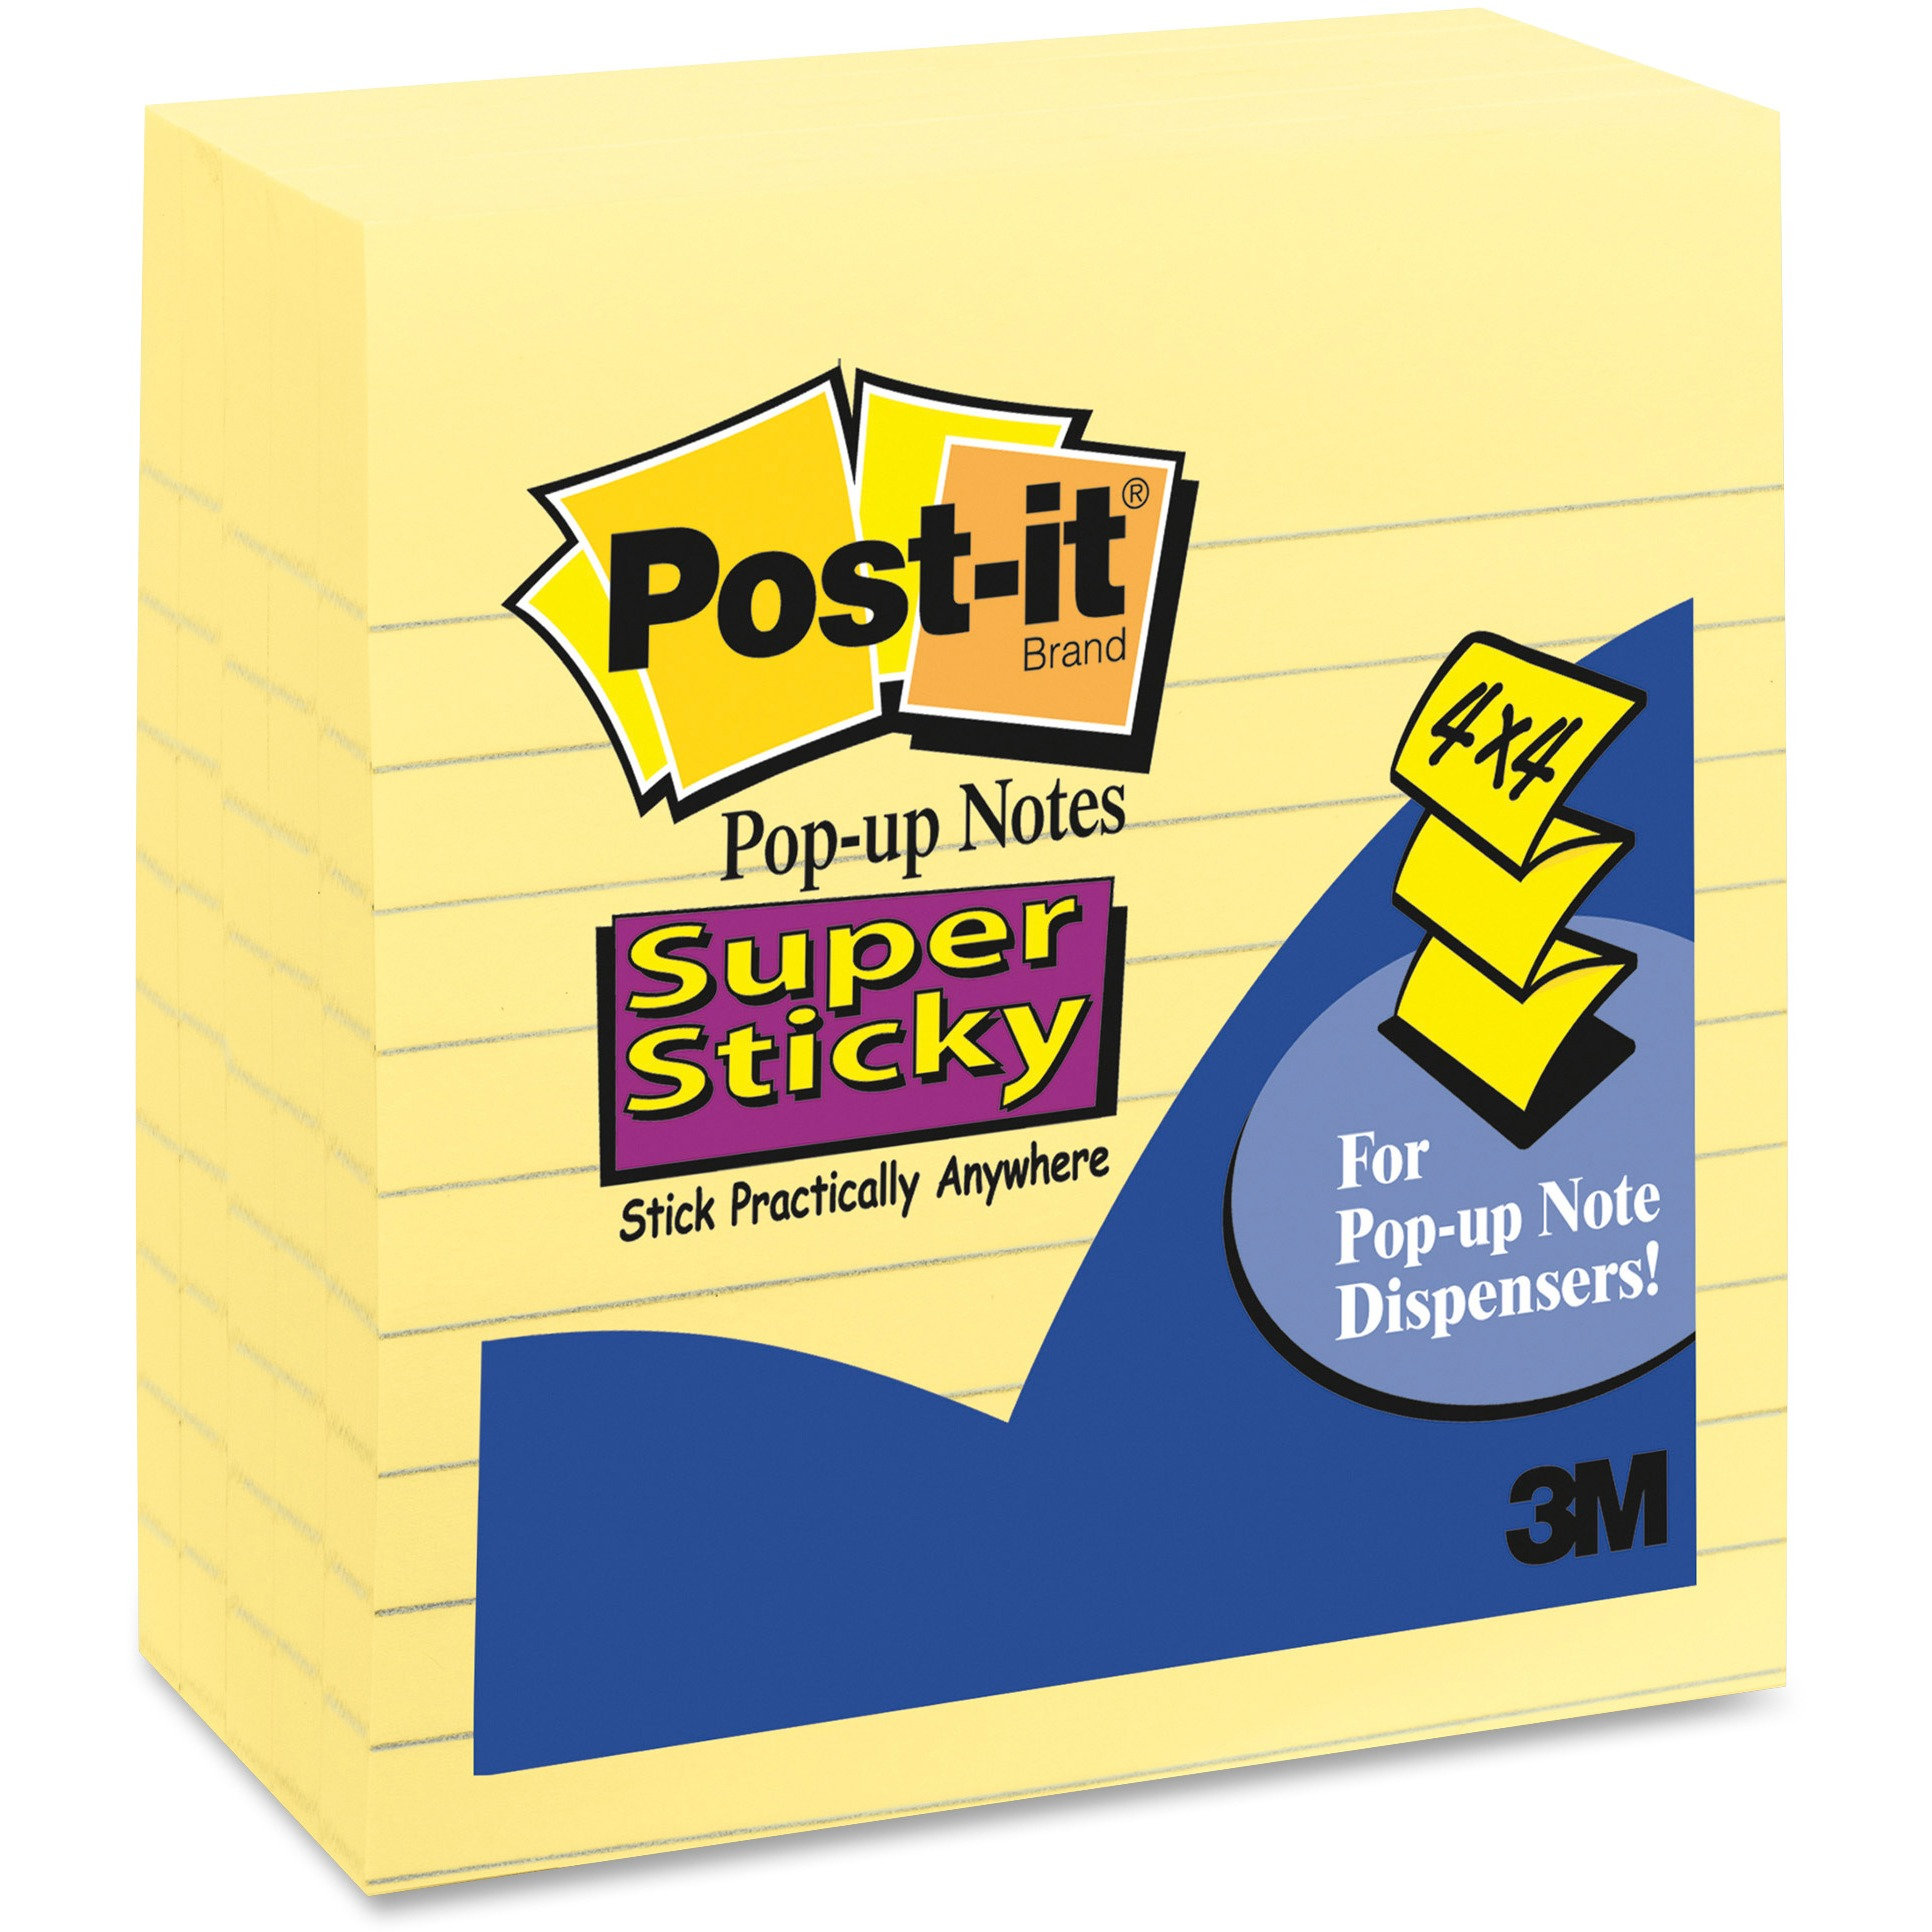 Post-it Super Sticky Lined Pop-up Notes 5 pack, 4 in x 4 in, Canary Yellow